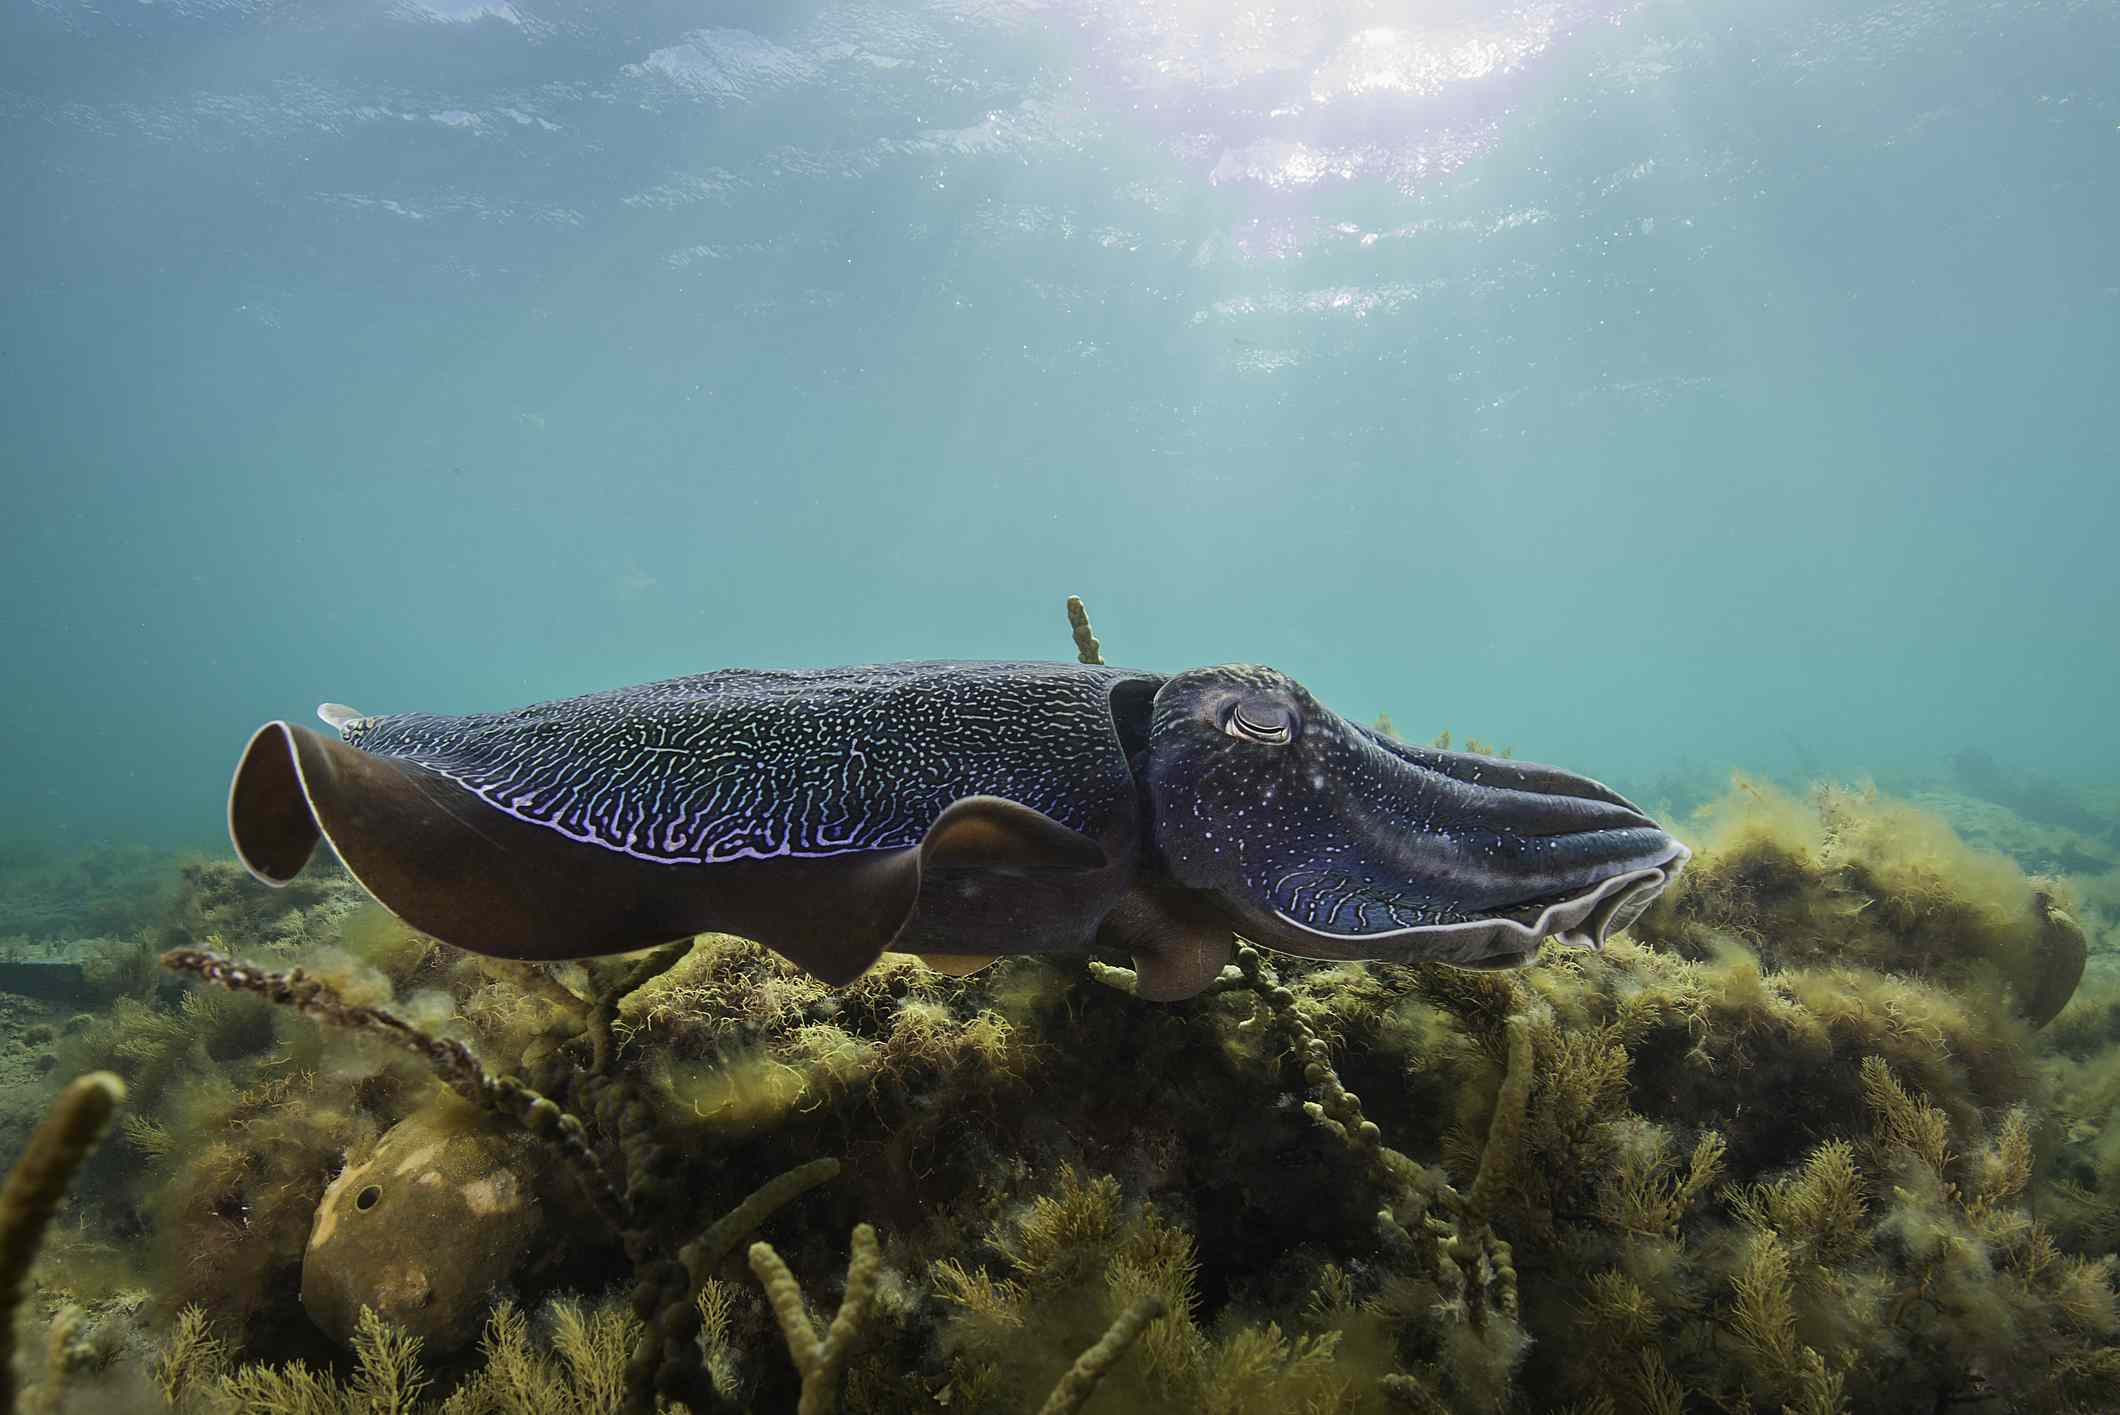 Australian giant cuttlefish swimming over a bed of kelp